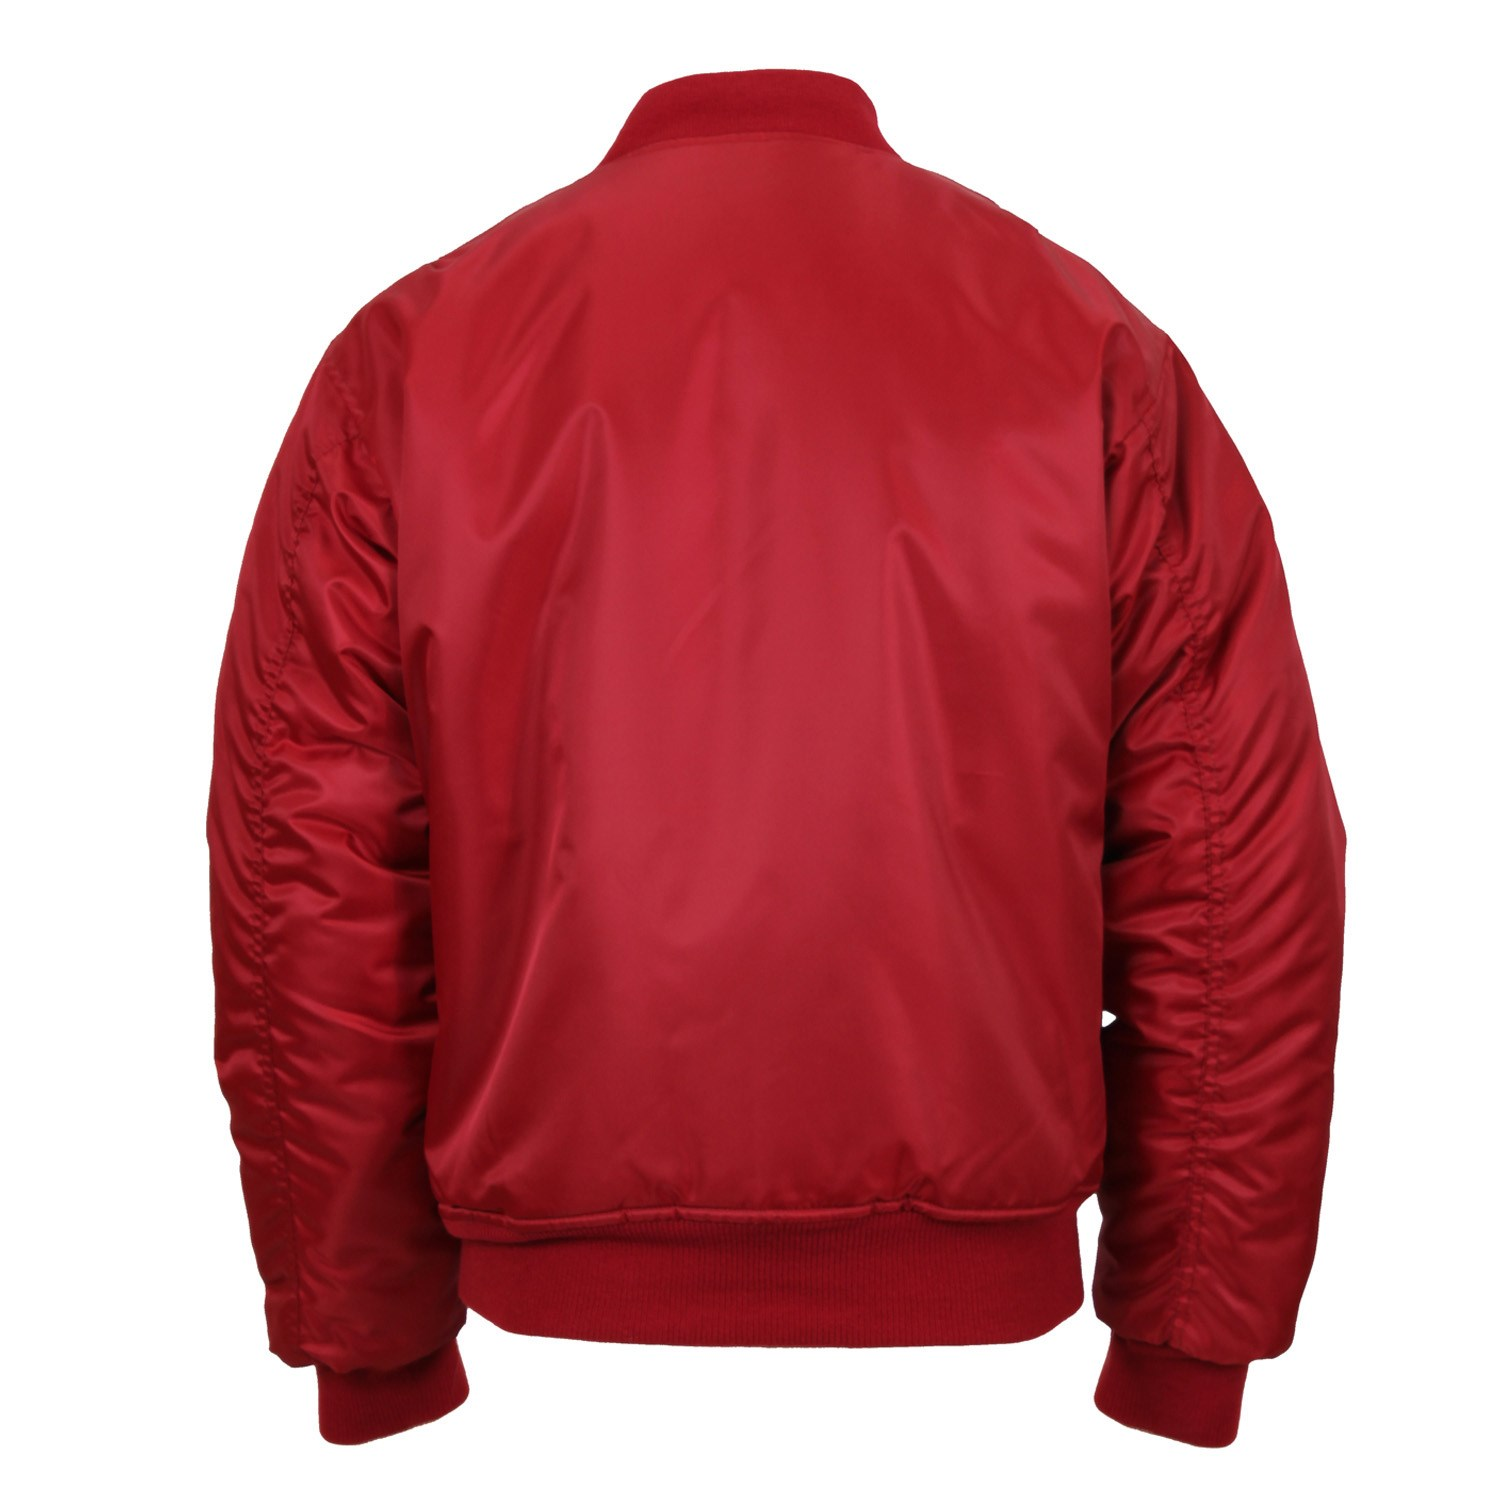 Jacket ULTRA FORCE MA1 FLIGHT RED ROTHCO 7474 L-11